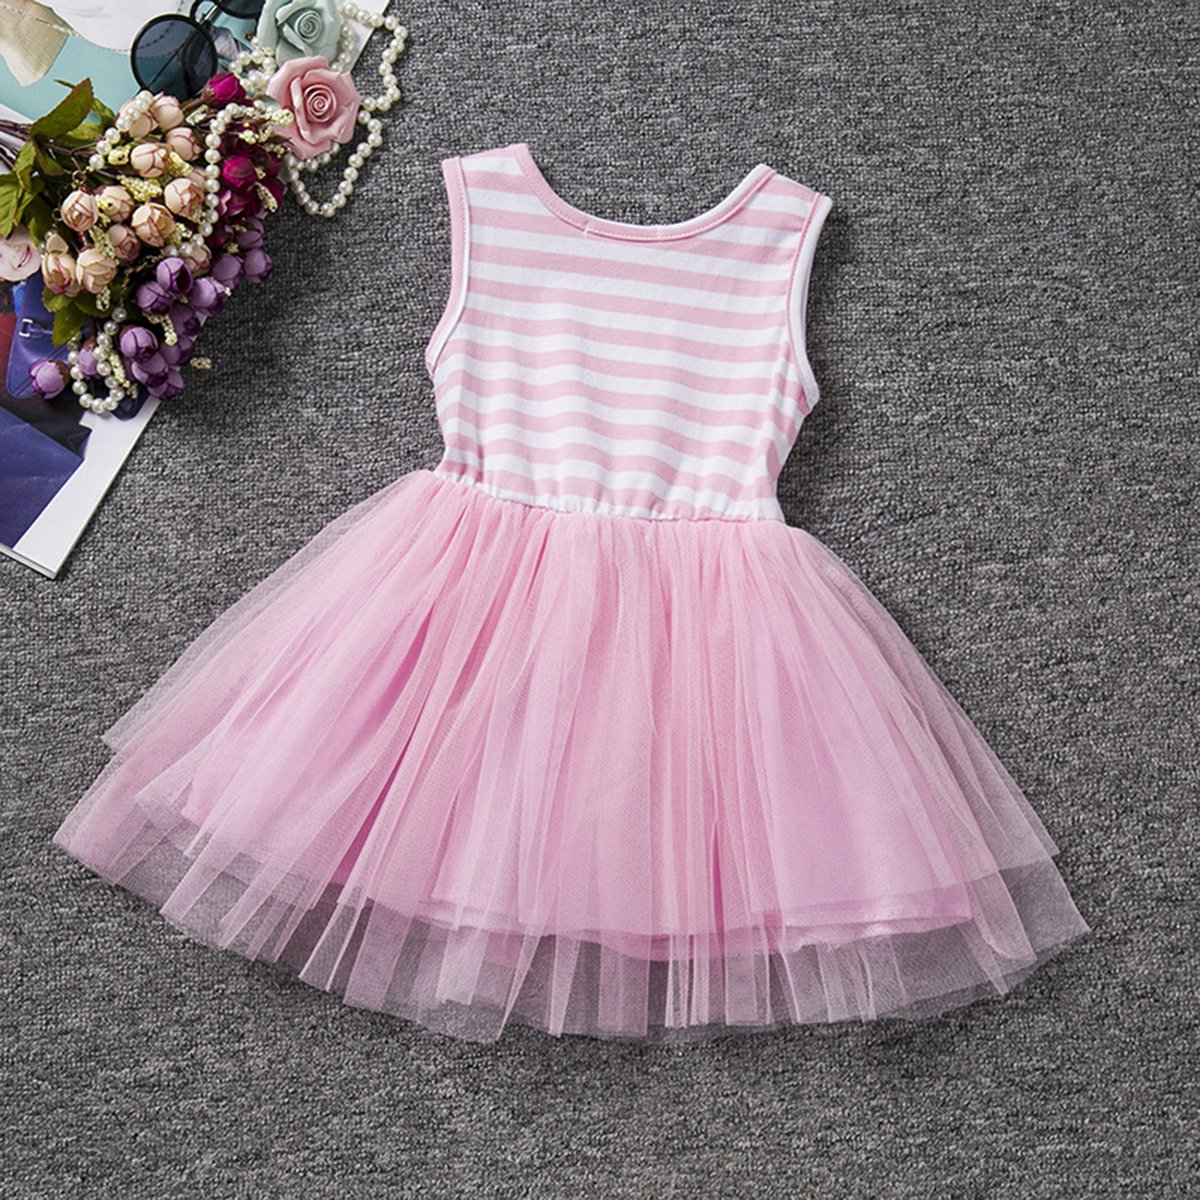 Little Baby Girl Shinny Stripe 1st//2nd Birthday Cake Smash Sleeveless Crown Printed Tulle Tutu Party Outfit Dress